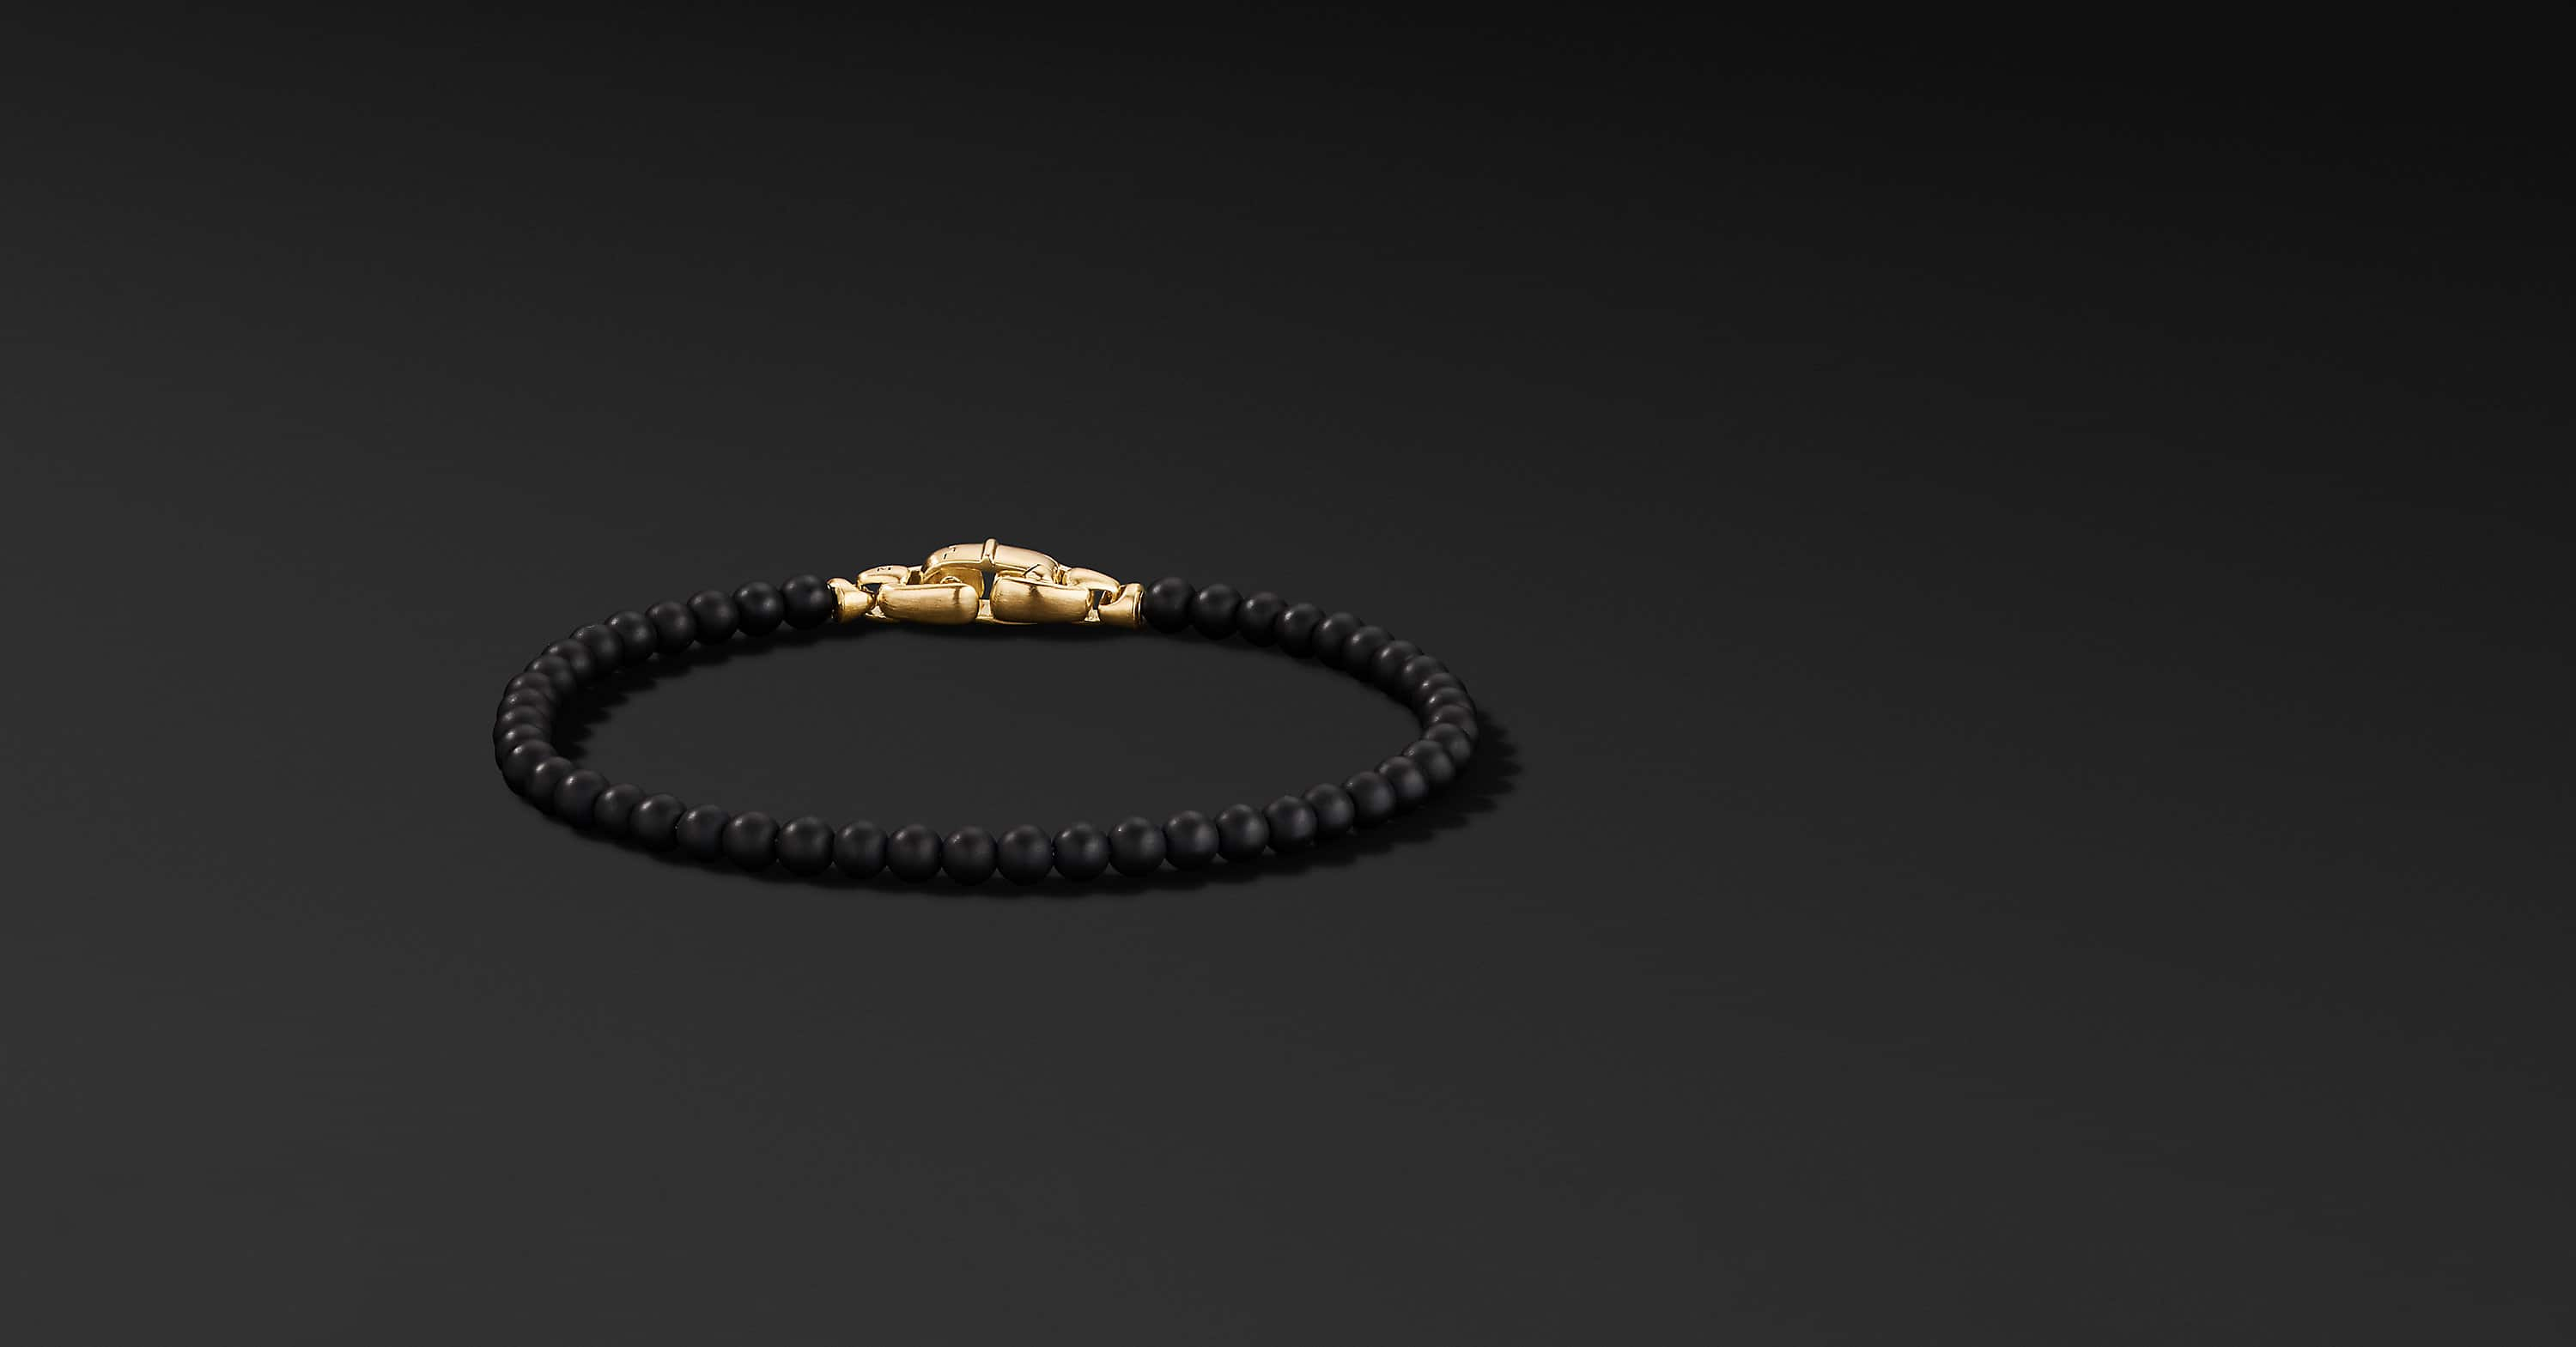 Spiritual Beads Bracelet with 18K Yellow Gold, 4mm